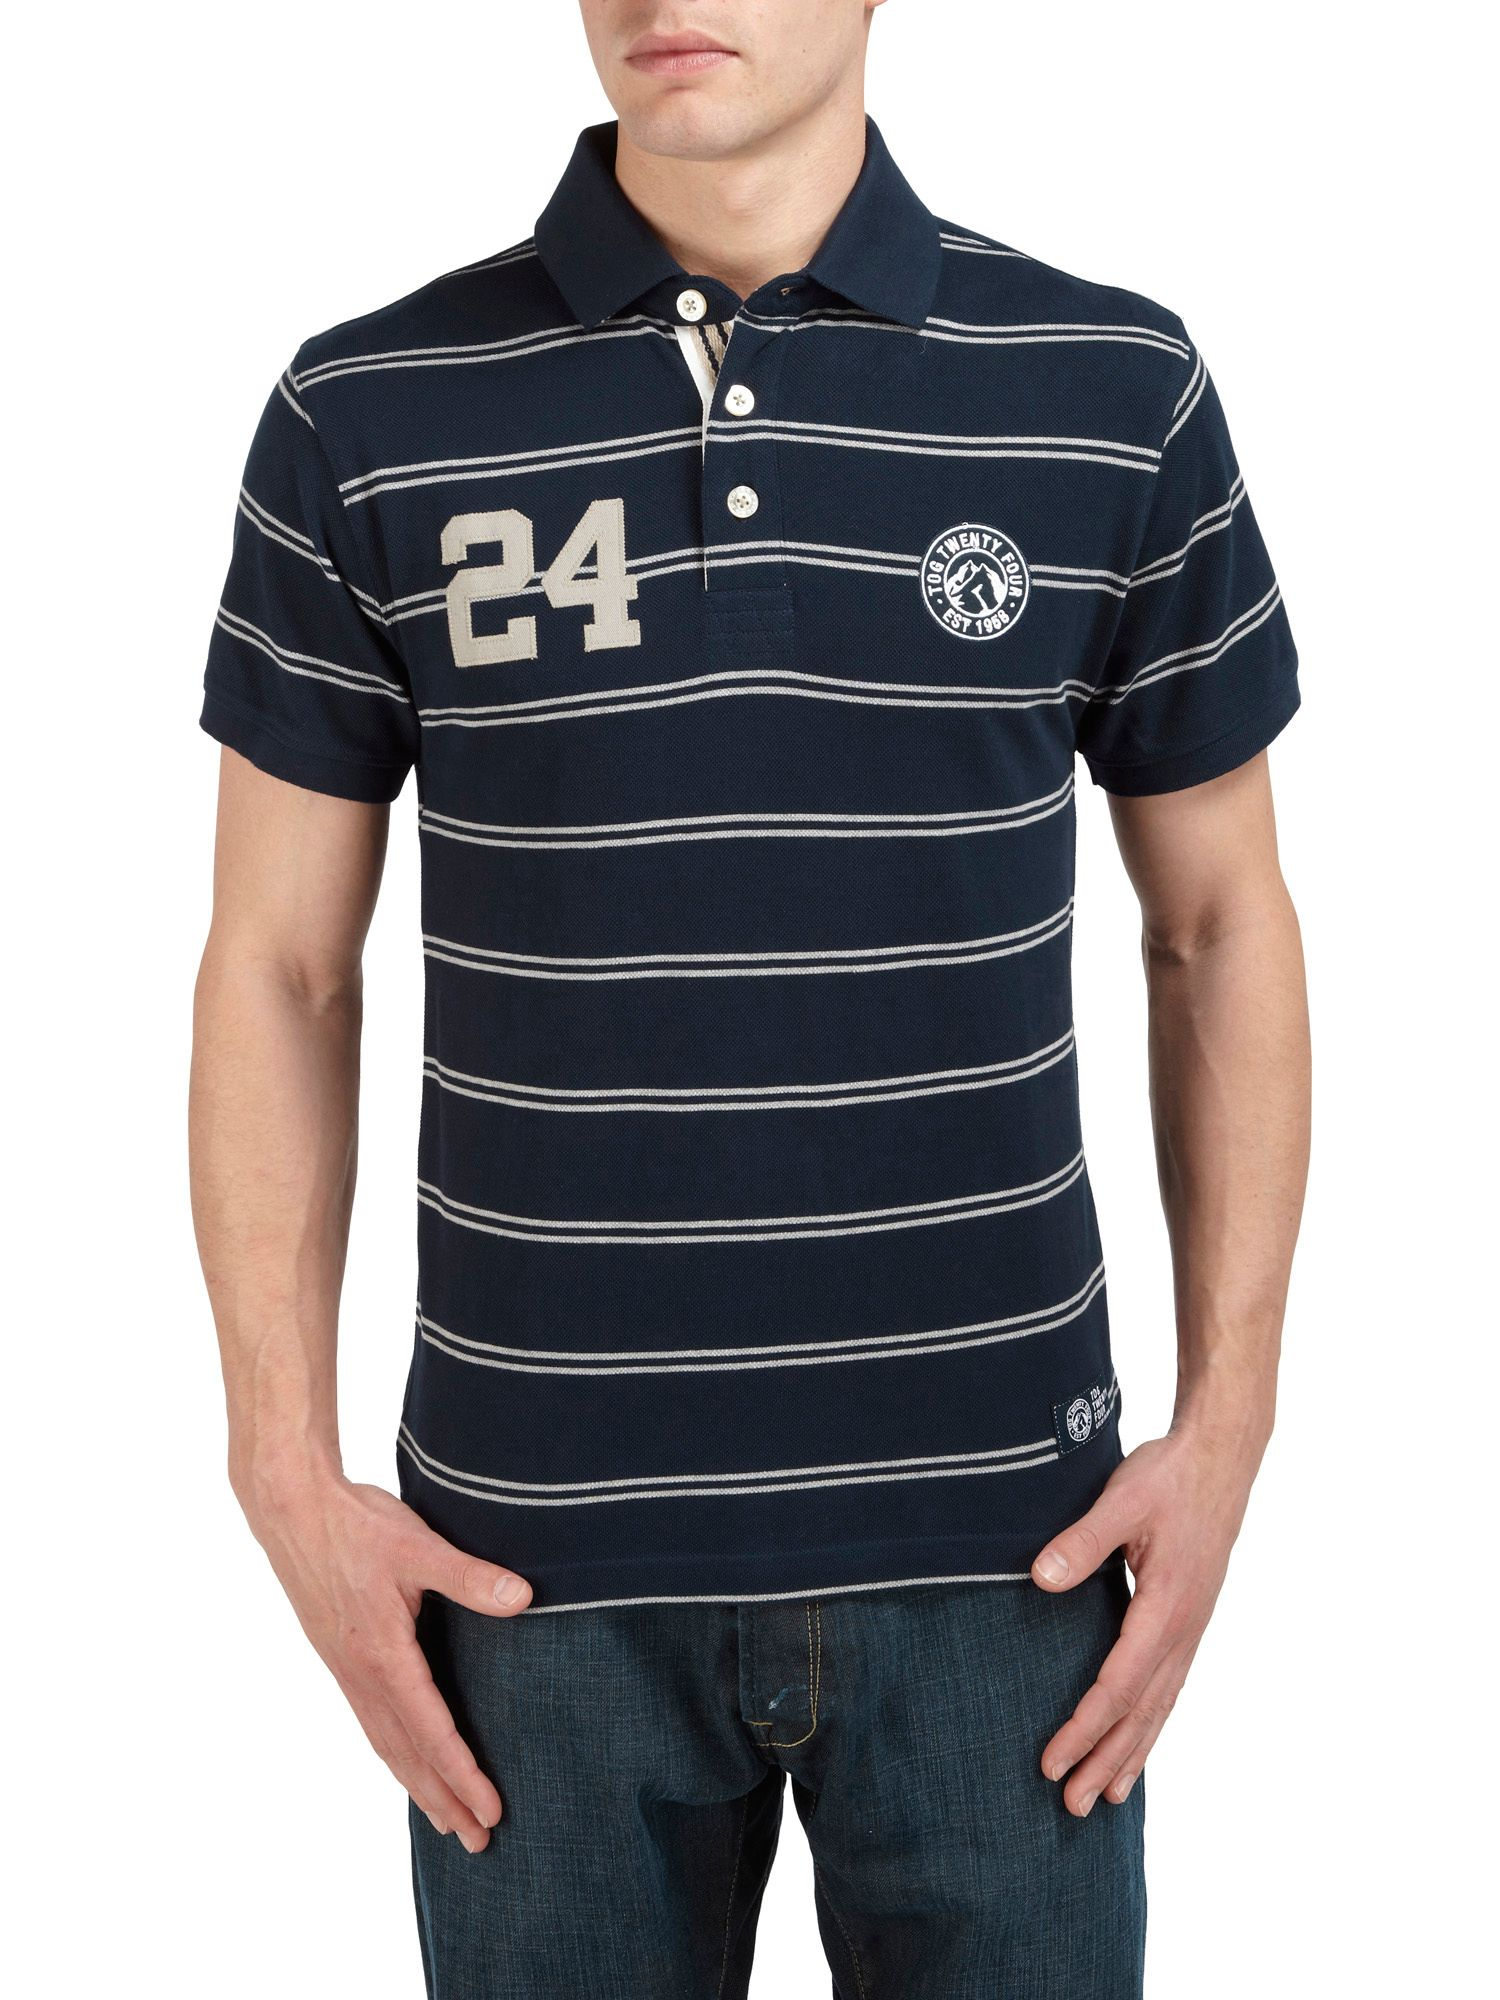 Comet stripe short sleeve polo shirt